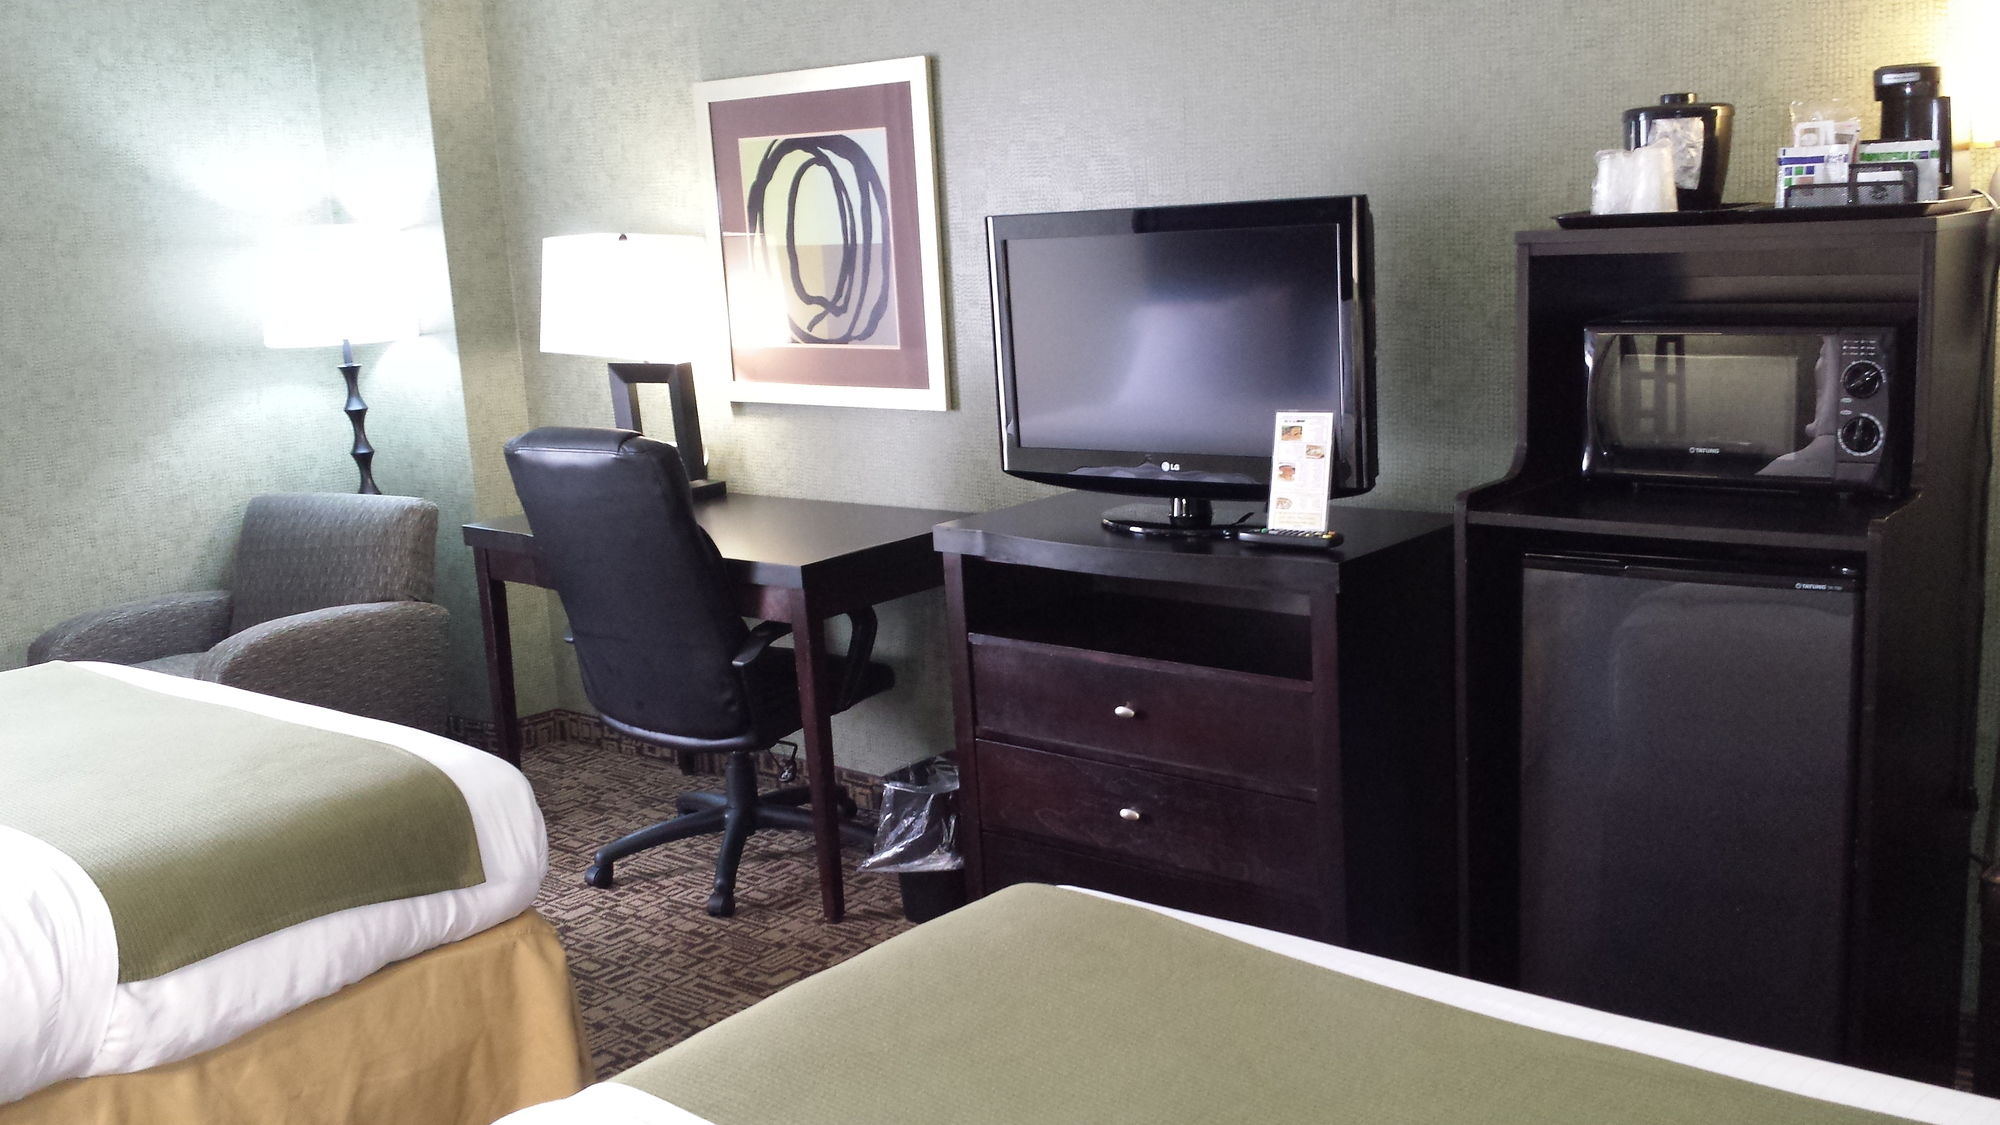 Holiday Inn Express Edgewood-Aberdeen-Bel Air